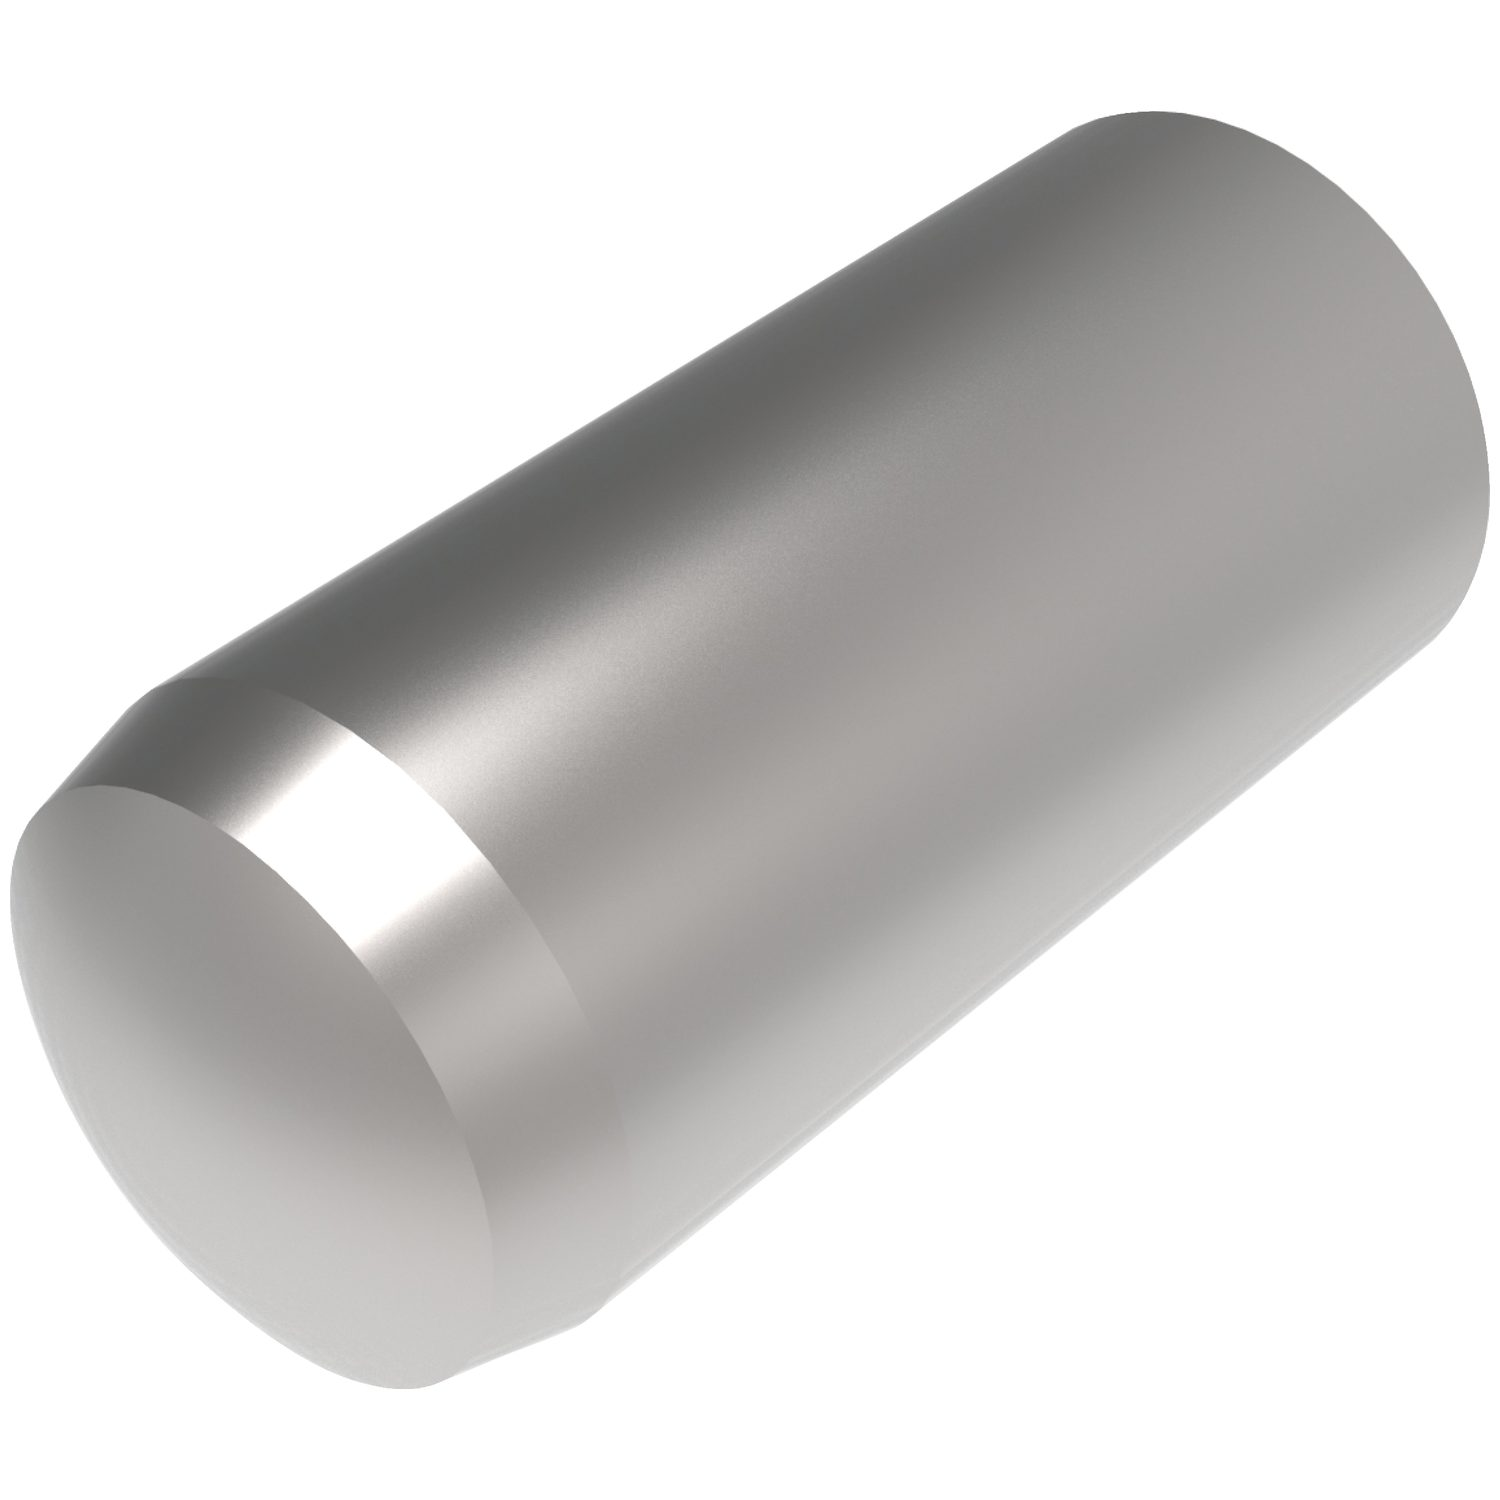 Extractable Dowel Pins Extractable dowel pins with air release made in steel. Manufactured to DIN 7979D. Ground flat along length for air release.